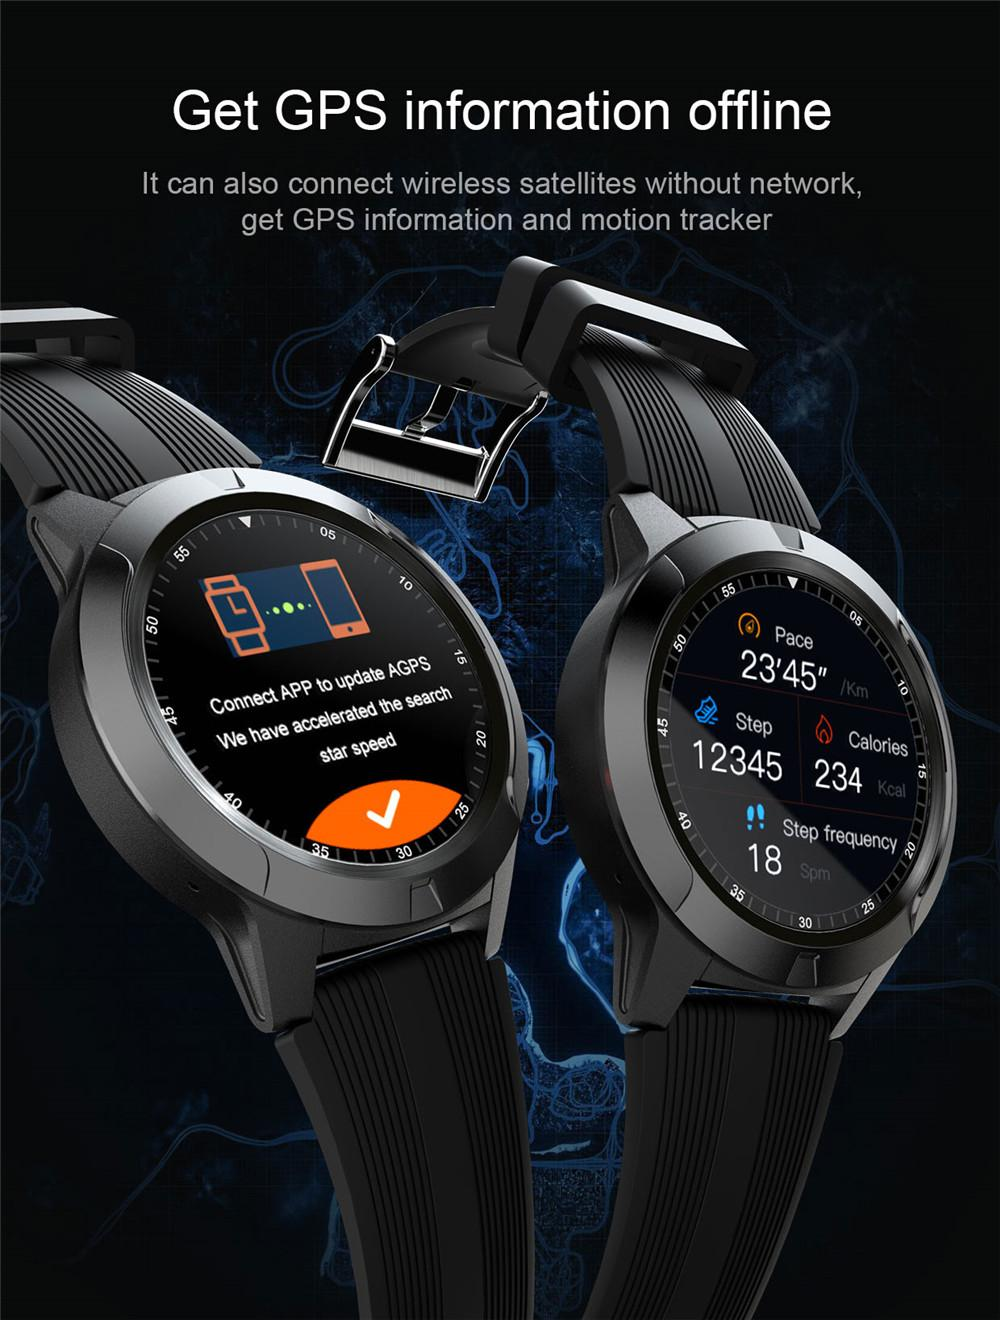 H17290f2e193b4baa90f56189a68c58d5N 2020 Built-in GPS Smart Watch GSM bluetooth Call Phone Air Pressure Heart Rate Blood Pressure Weather Monitor Sport Smartwatch